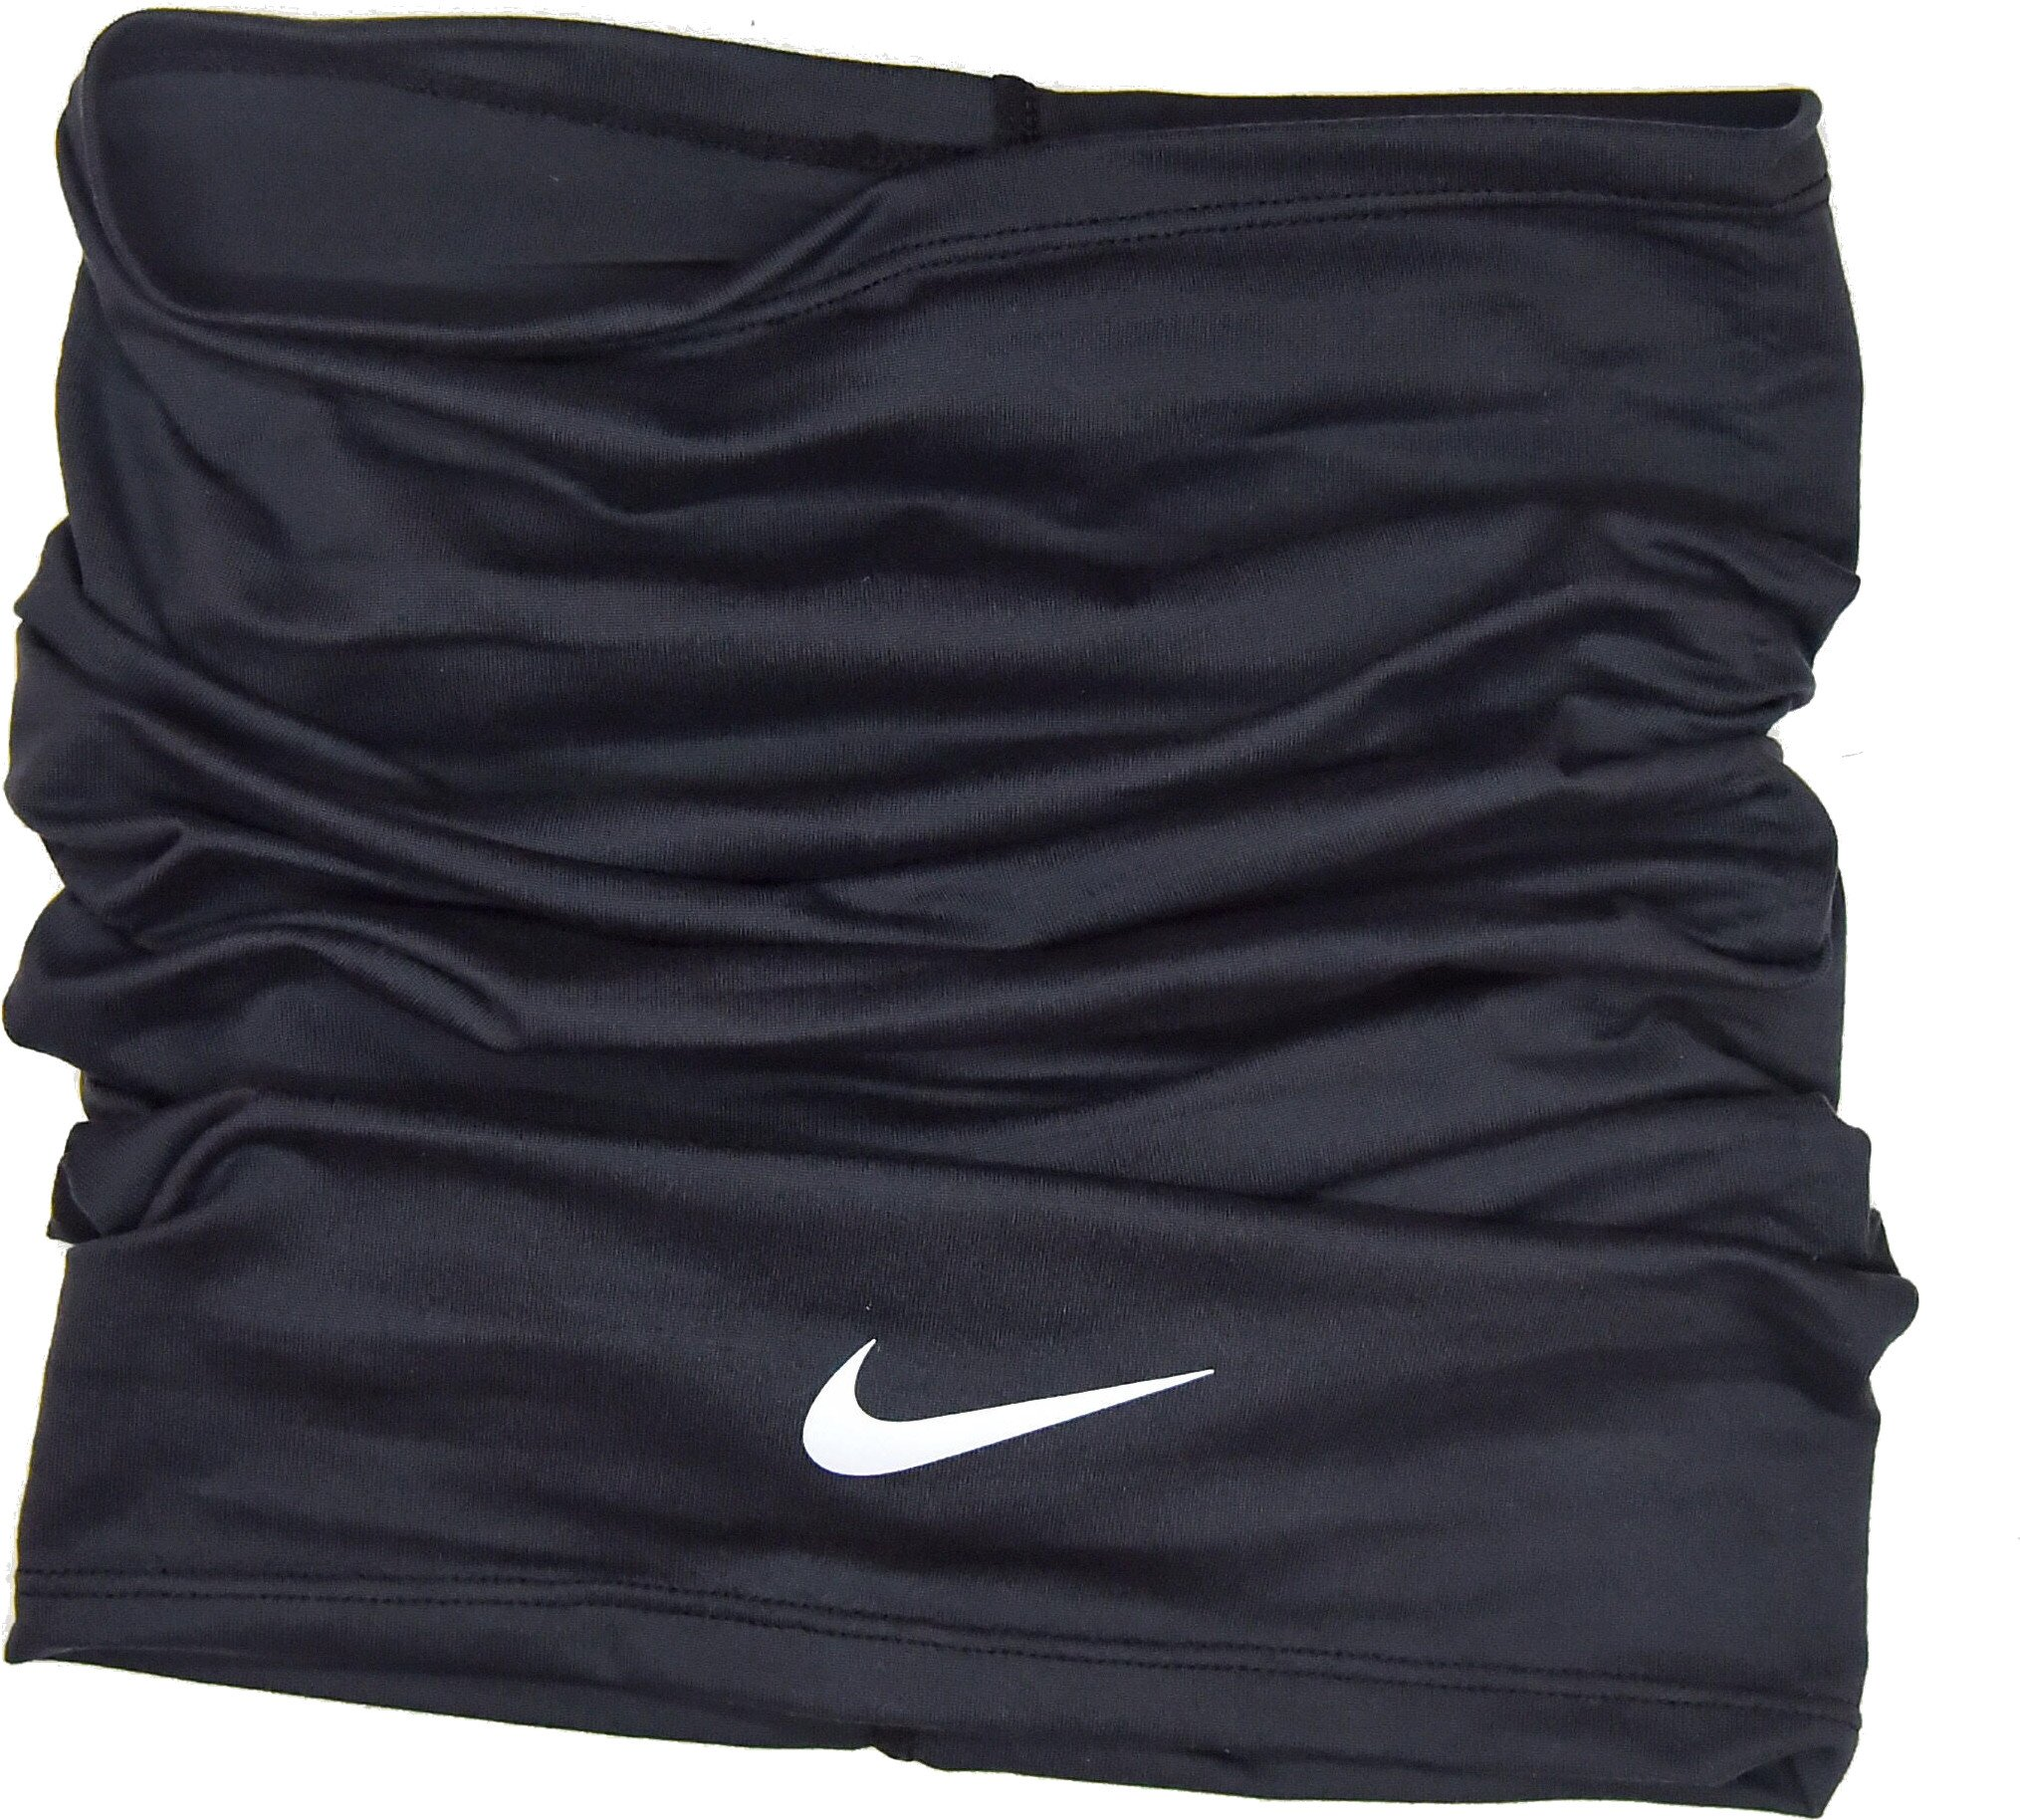 Halswärmer Nike FOOTBALL/RUNNING WRAP